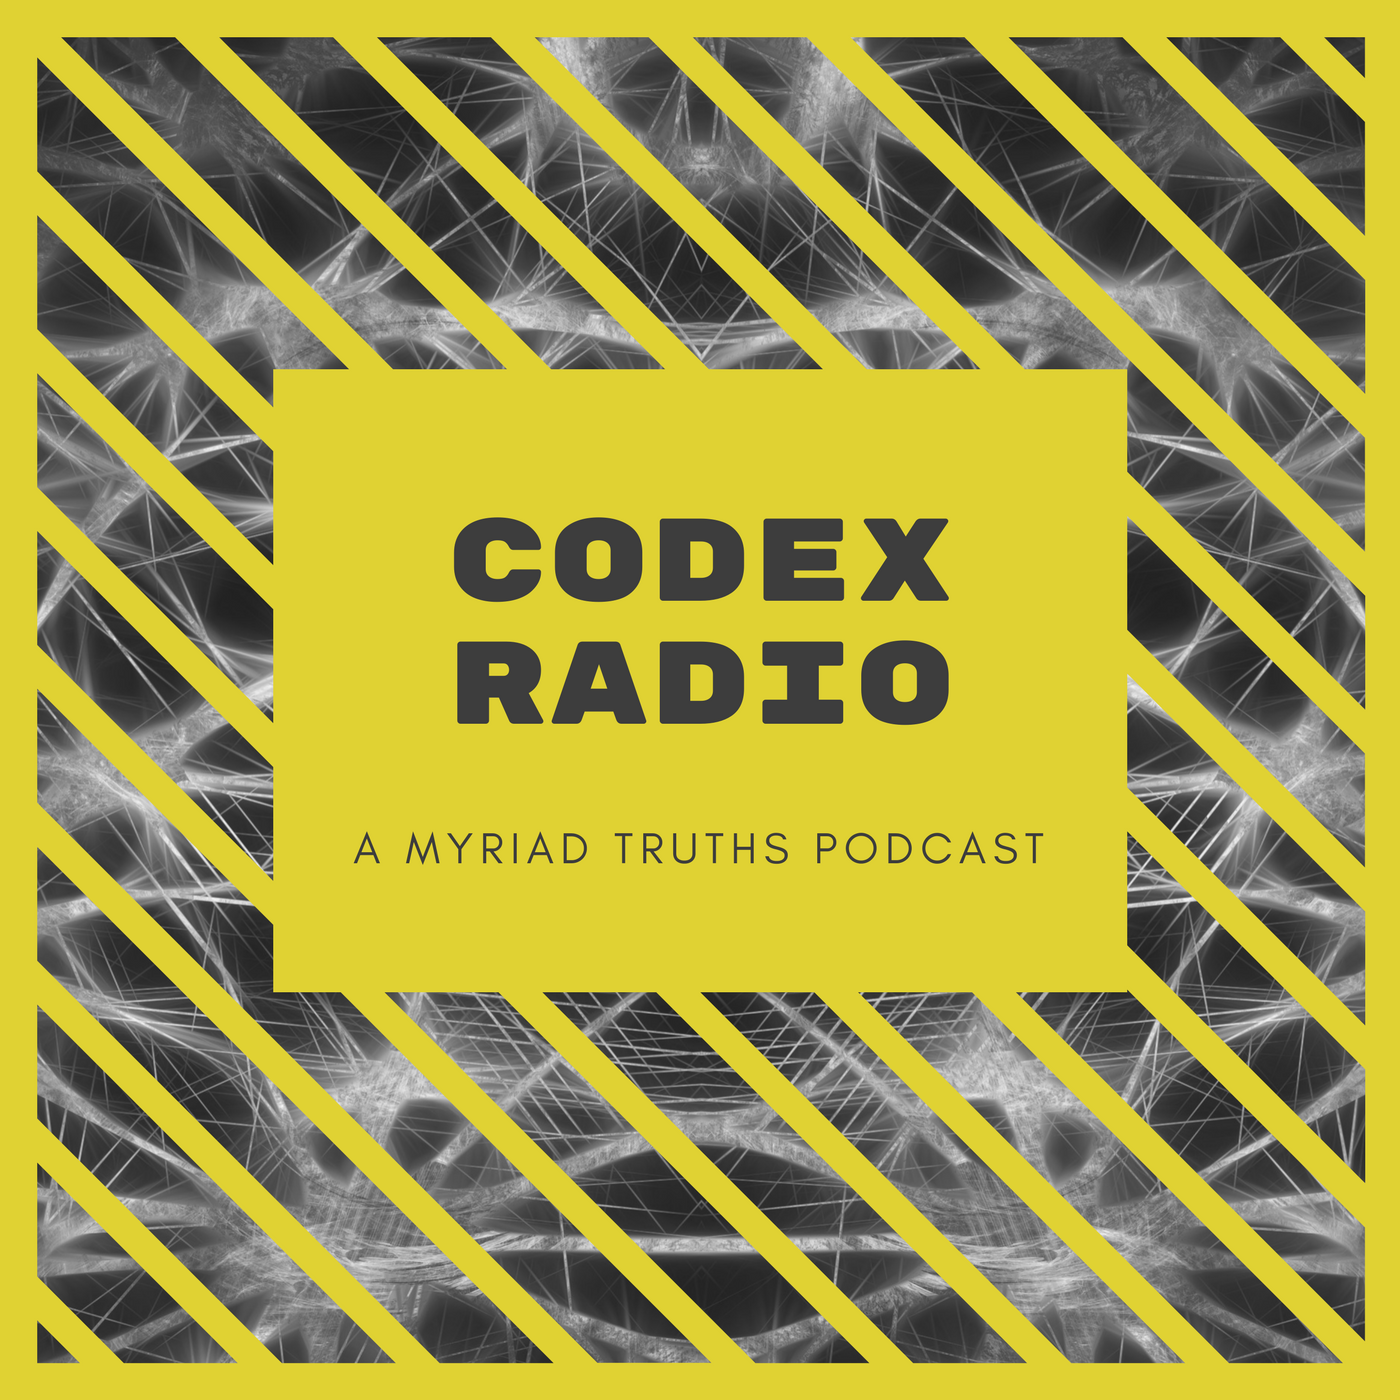 Codex 20radio